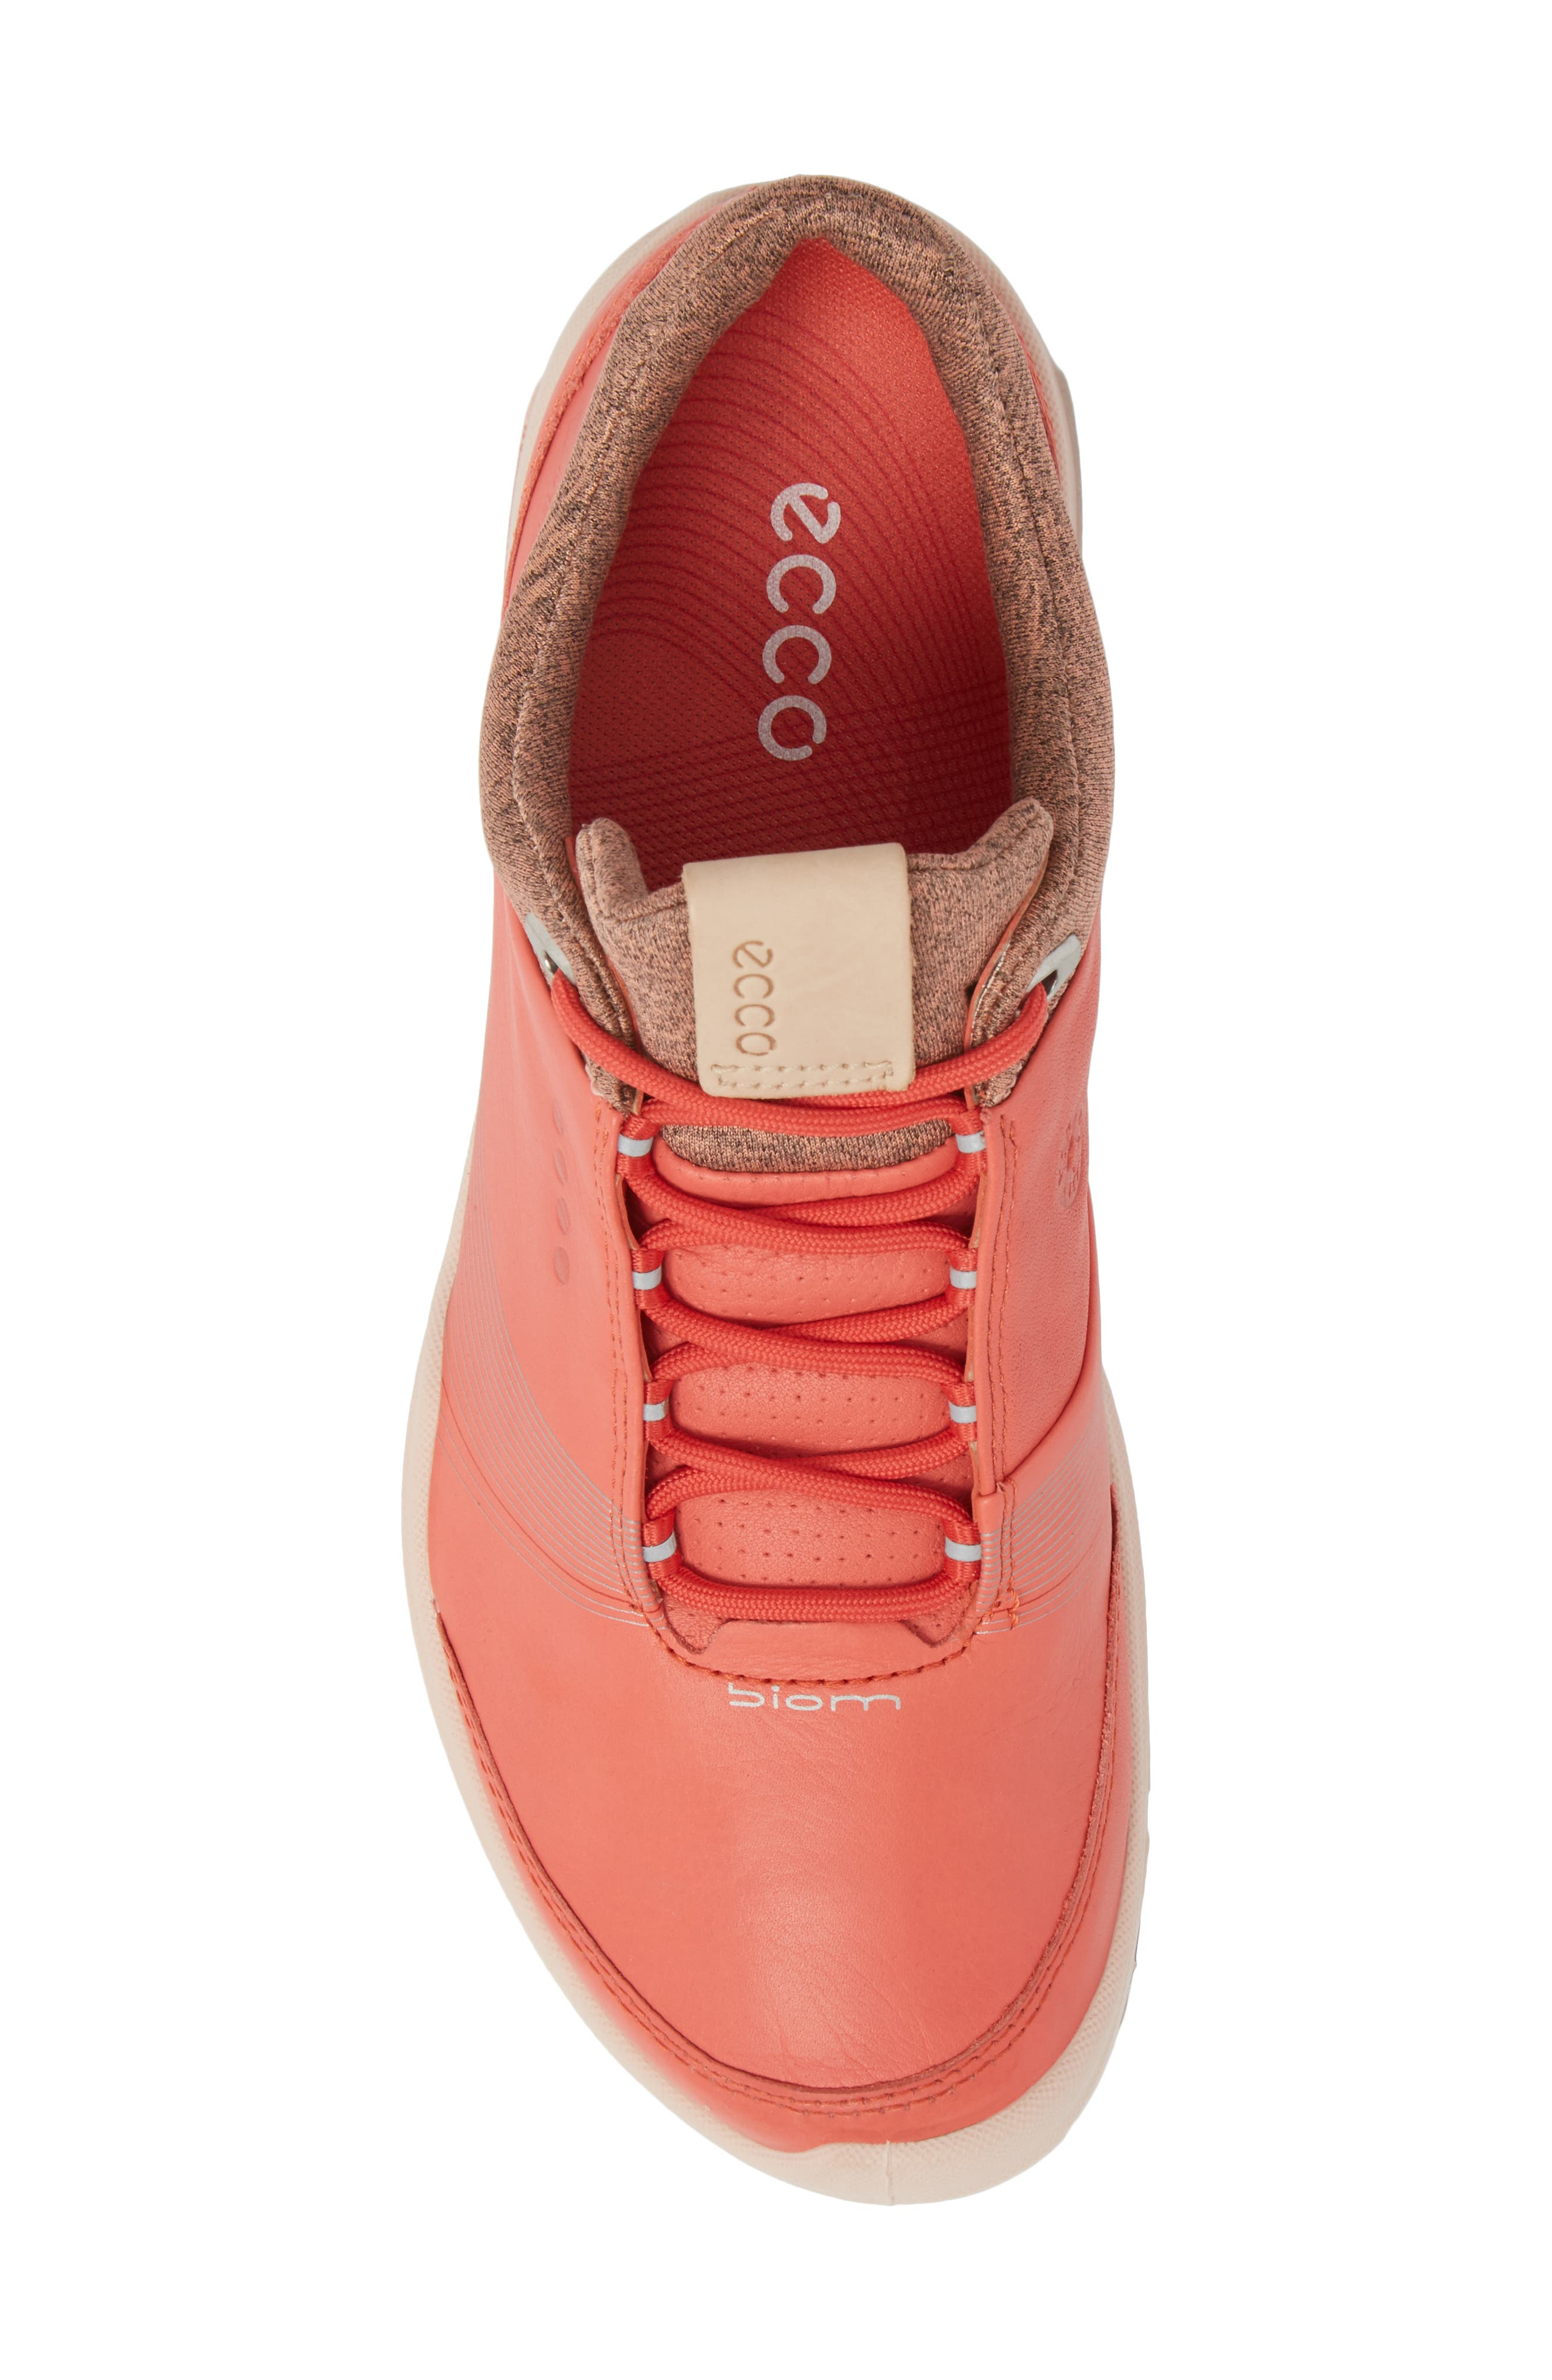 BIOM 2 Hybrid Gore-Tex<sup>®</sup> Golf Shoe,                             Alternate thumbnail 5, color,                             Spiced Coral Leather